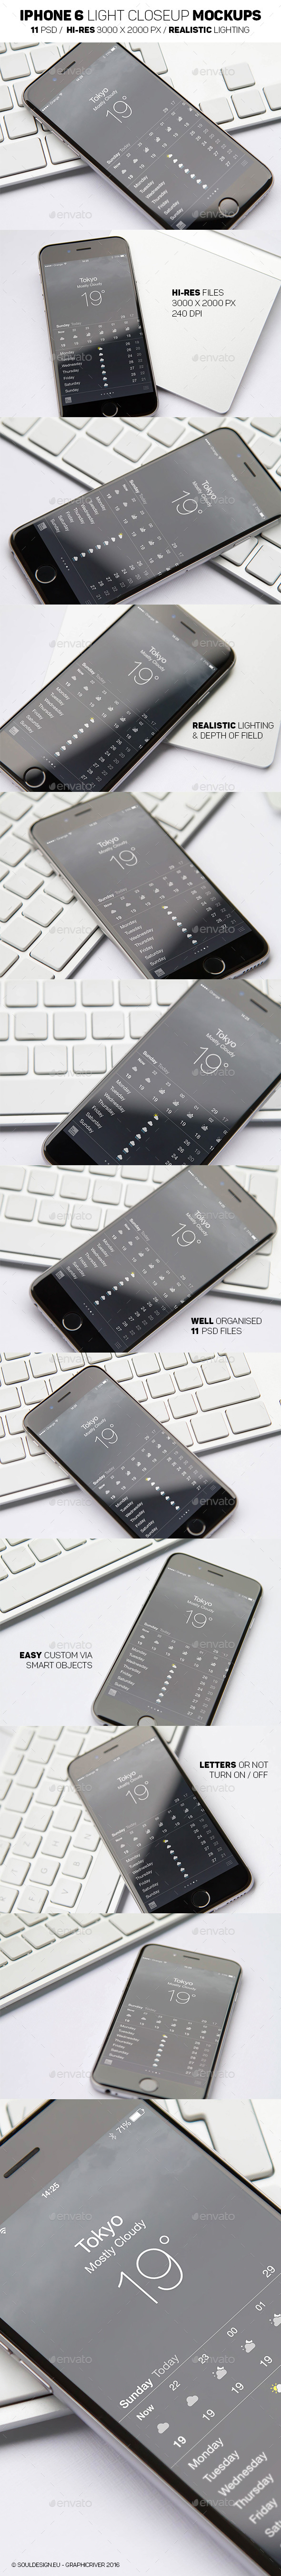 iPhone 6 Light Mockups - Mobile Displays